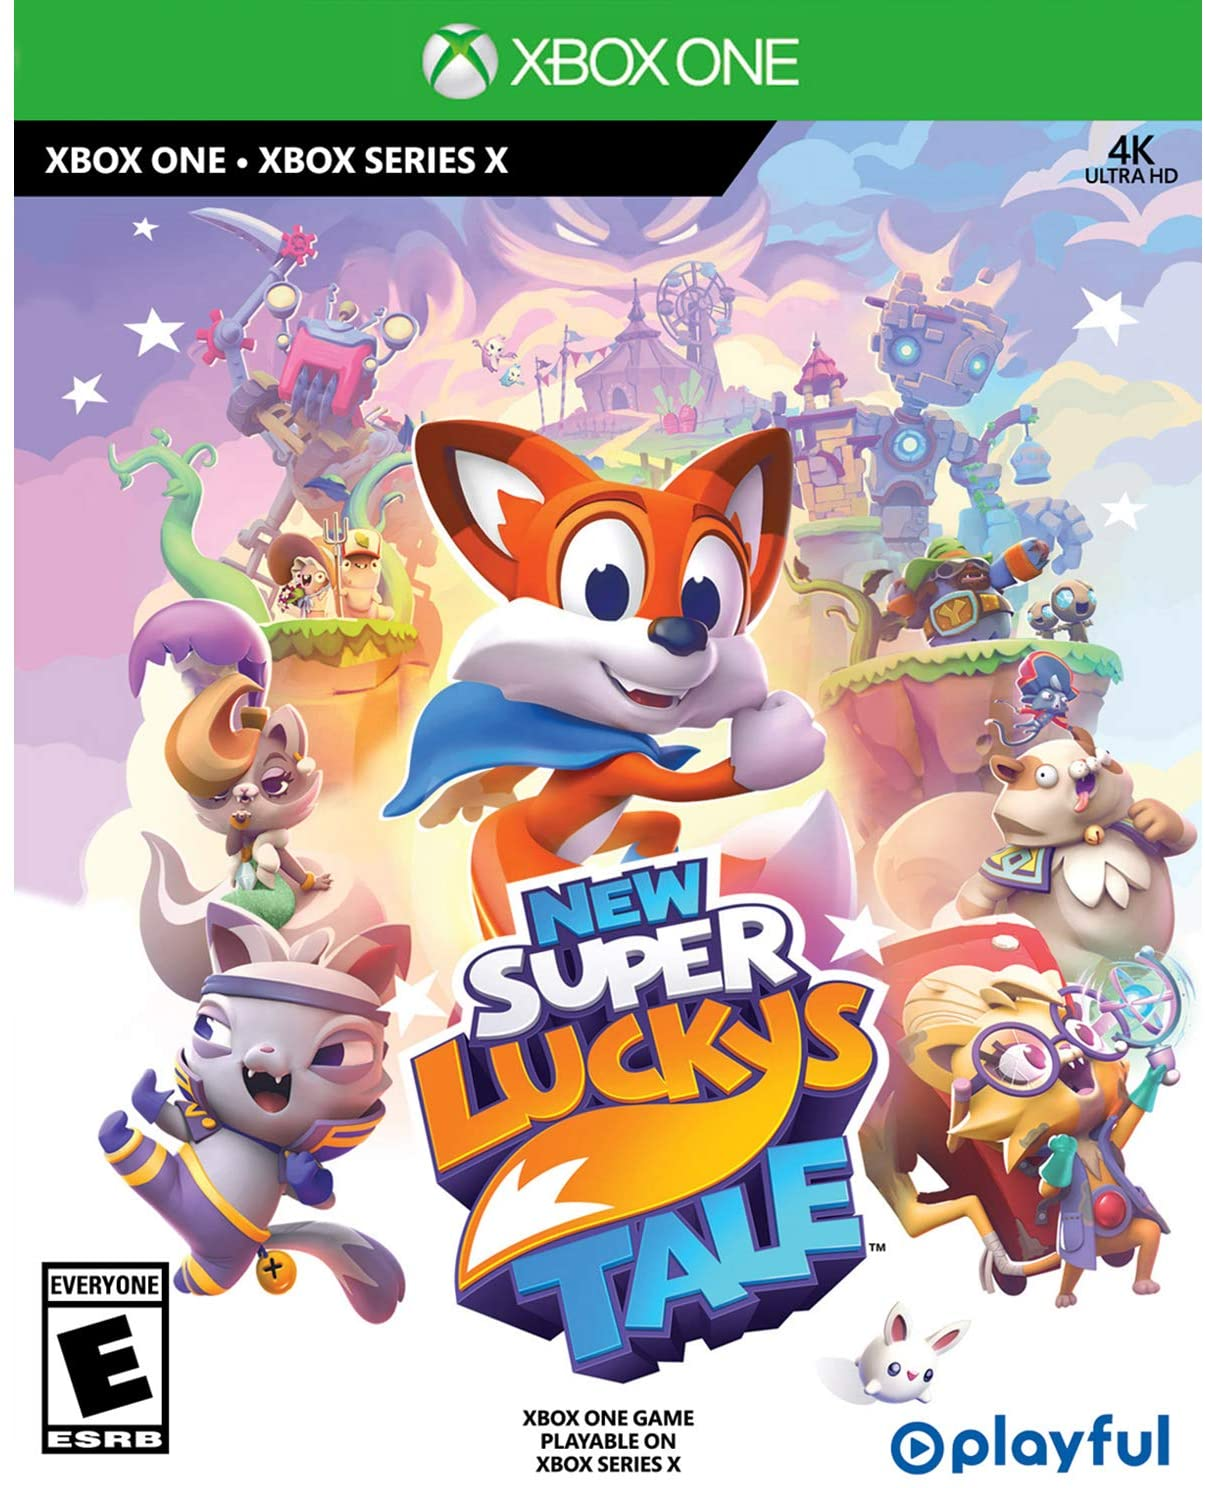 New Super Luckys Tale para Xbox One